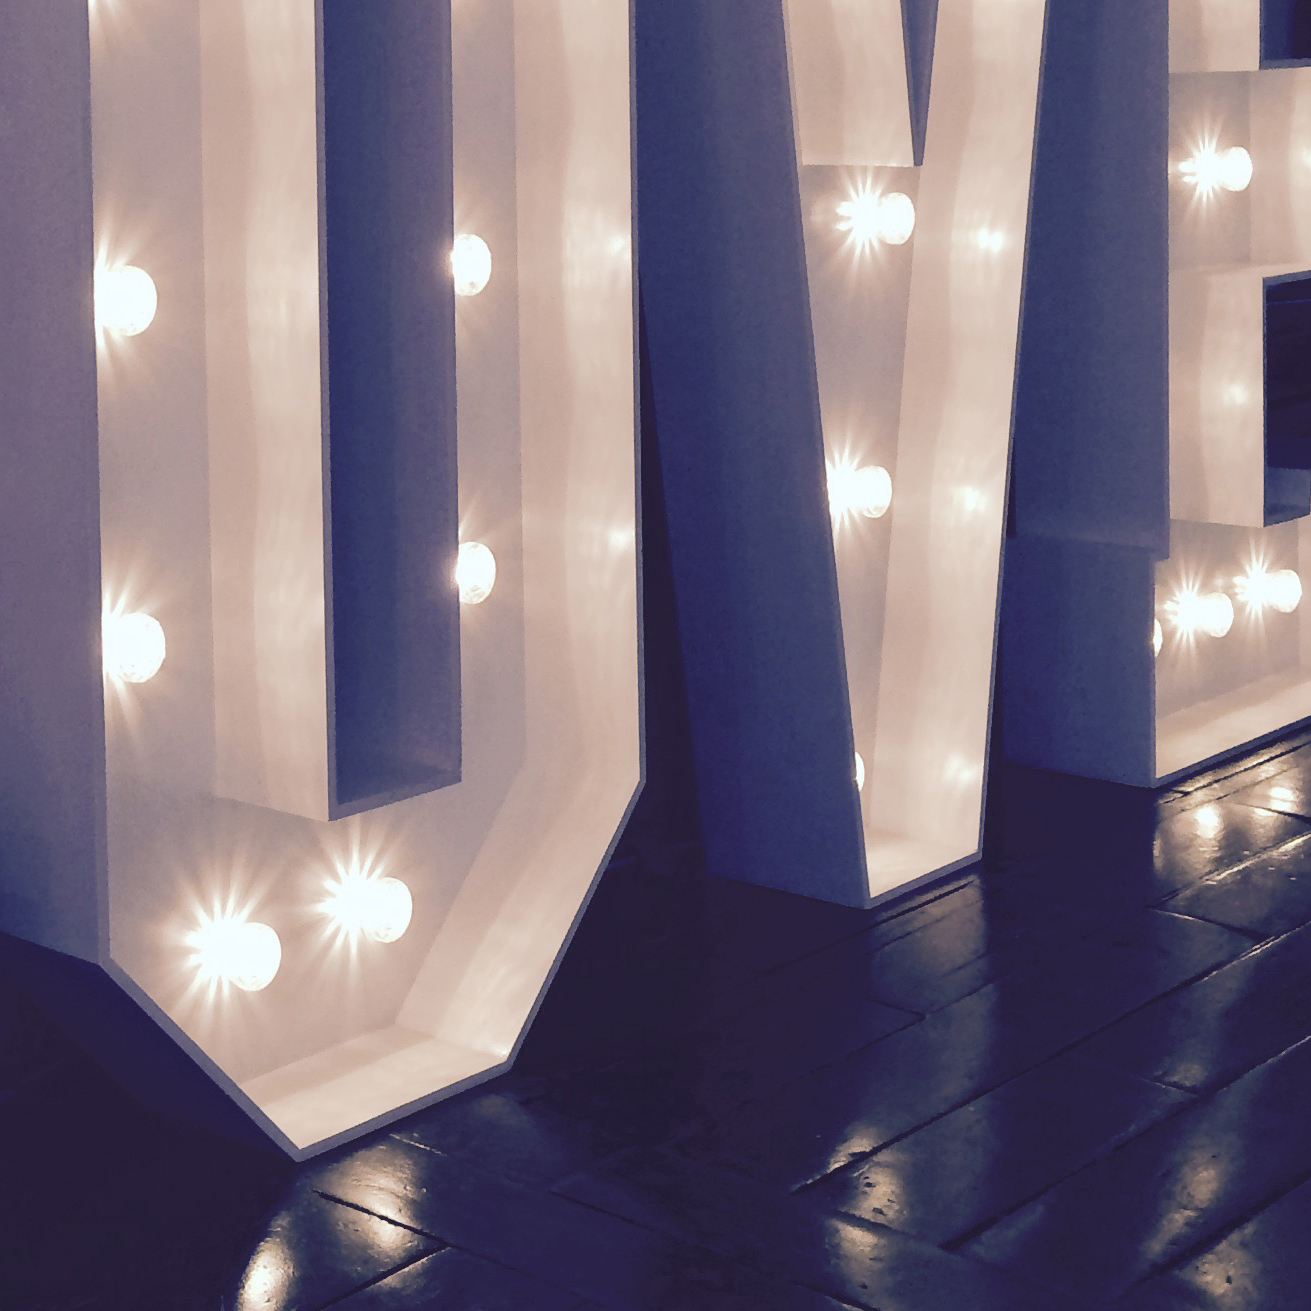 freestanding illuminated letters